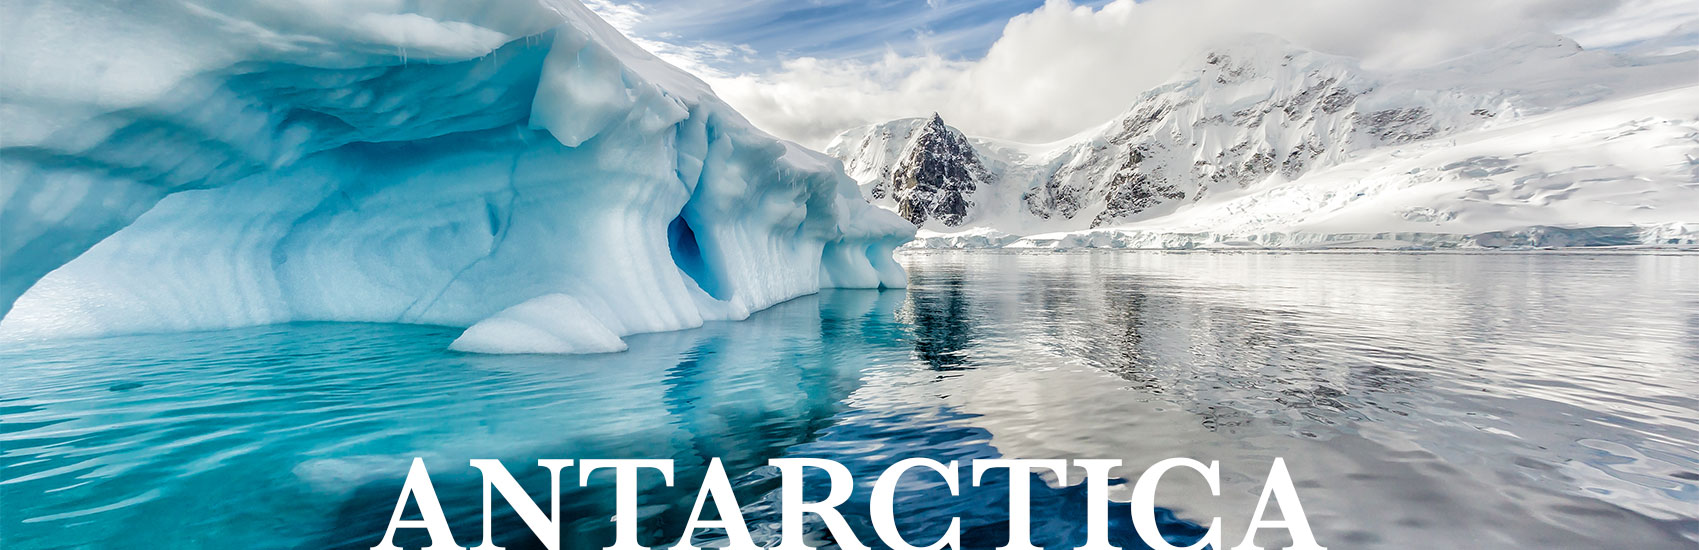 Cruise to Antarctica 0